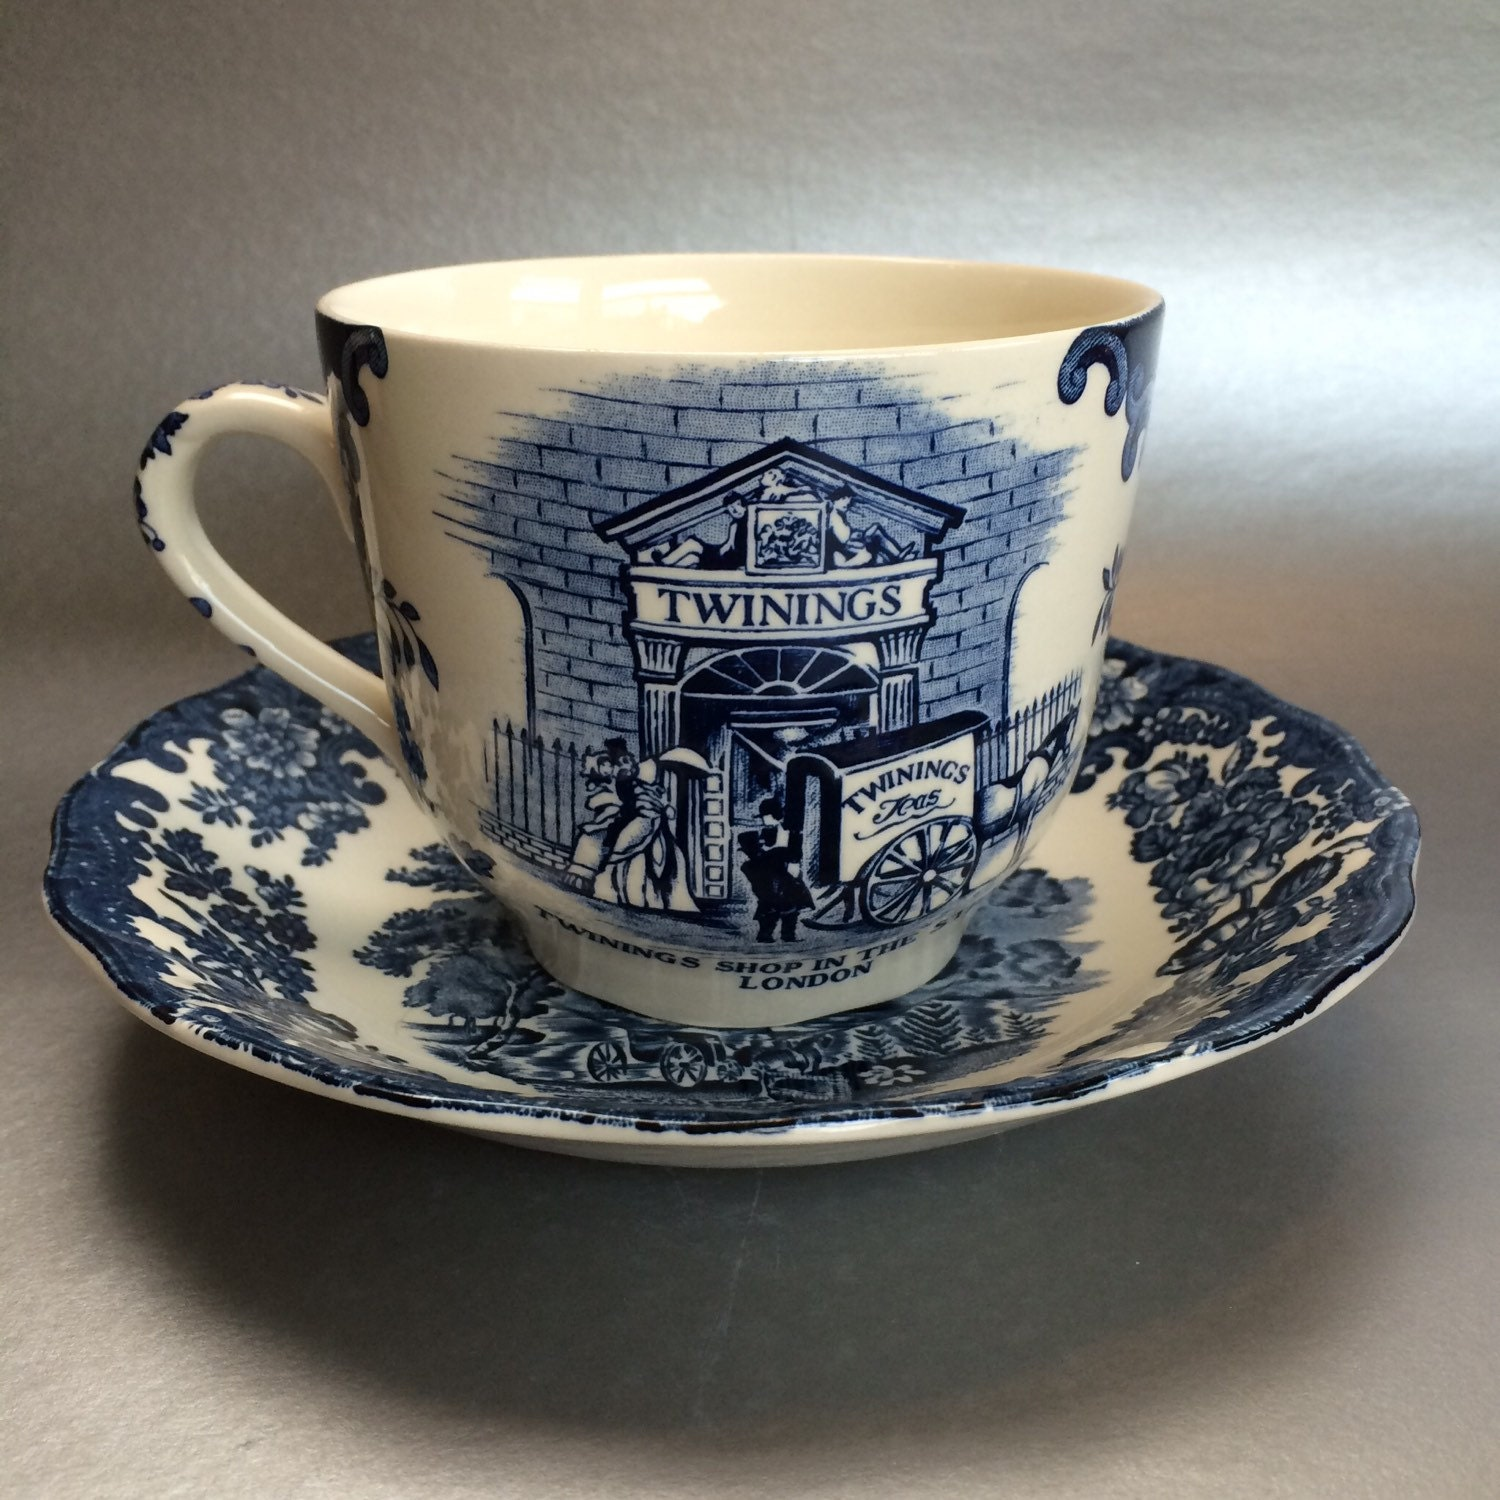 pallisy twinings oversized commemorative cup and saucer